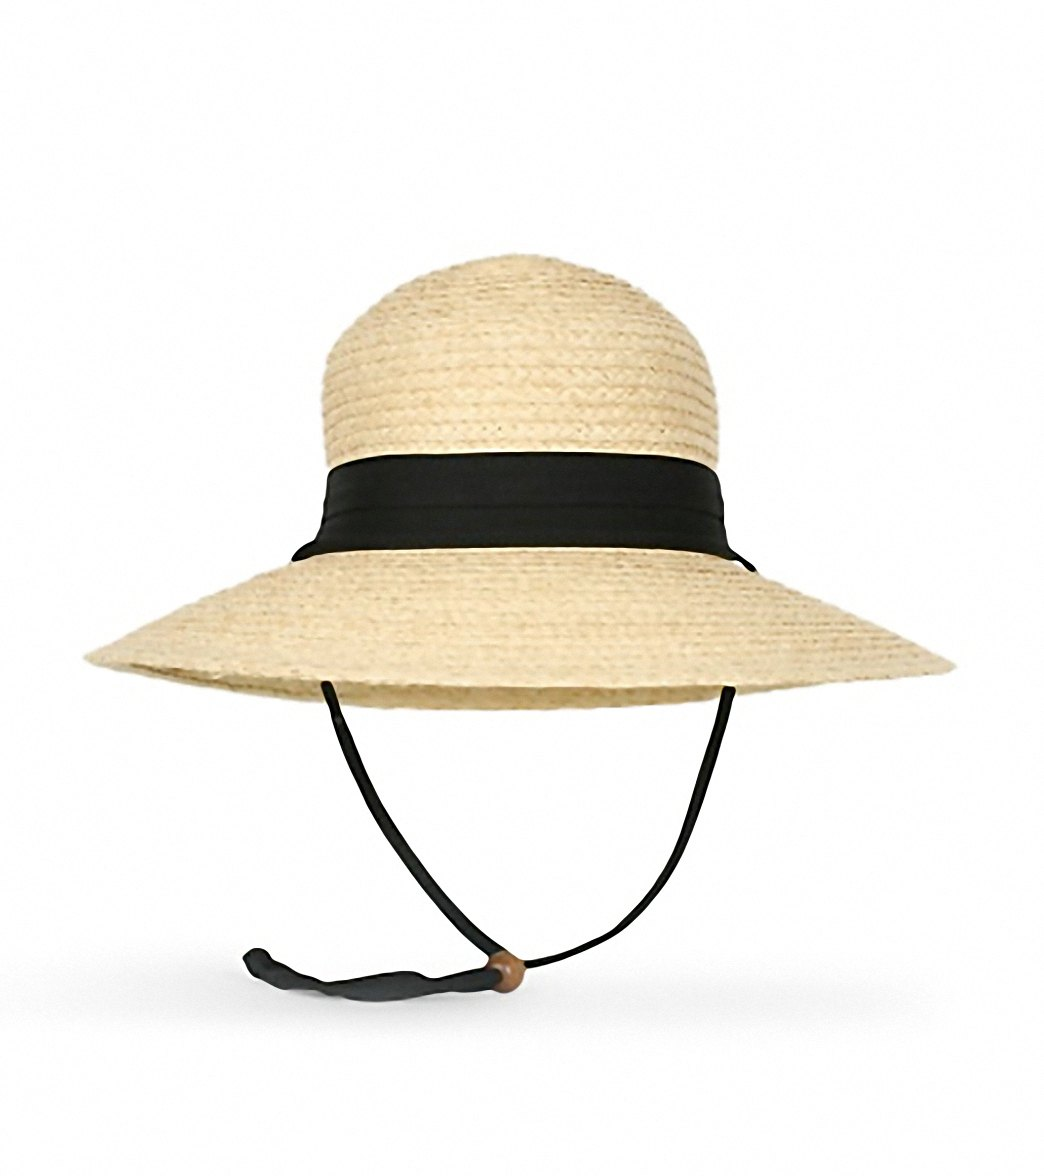 f9ac9e1a48b Sunday Afternoons Women s Catalina Hat at SwimOutlet.com